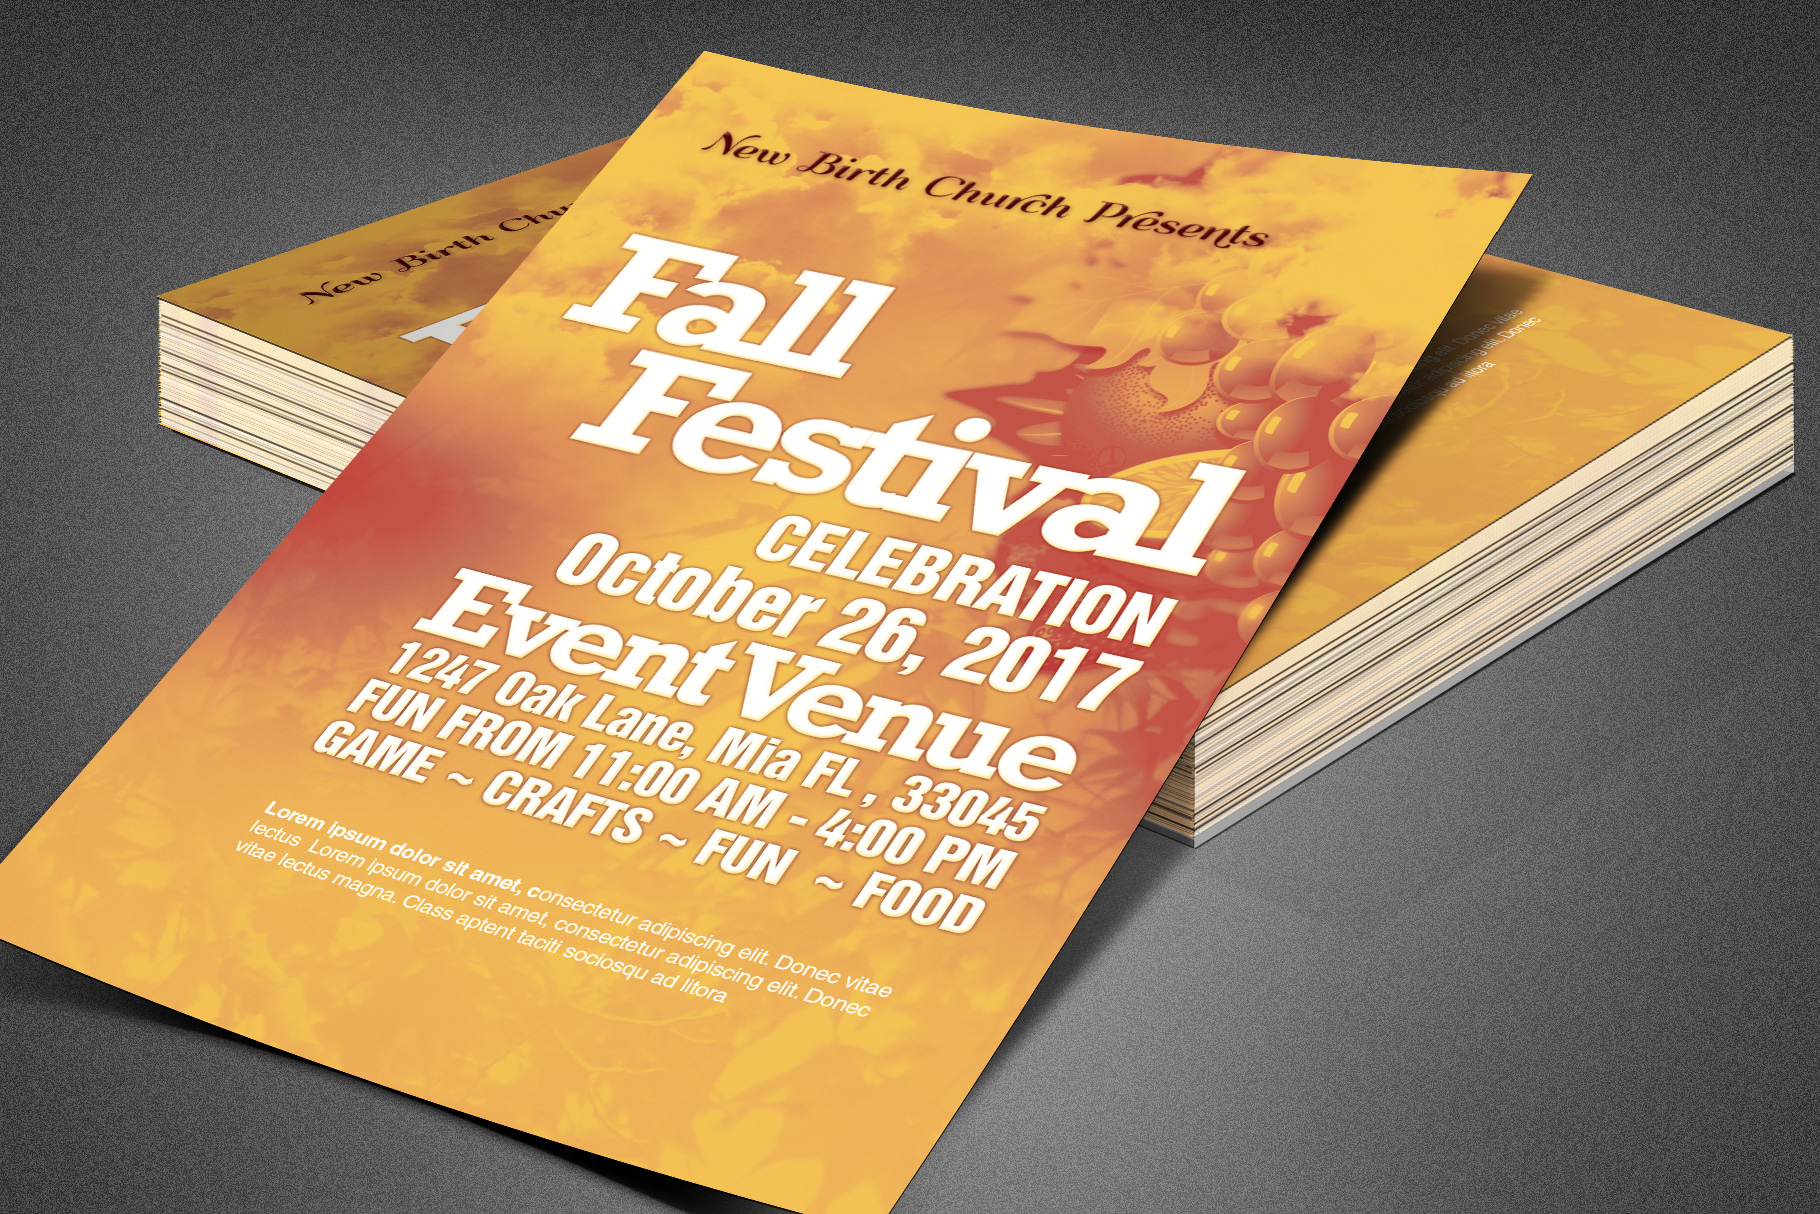 Fall Festival Church Flyer Template example image 3